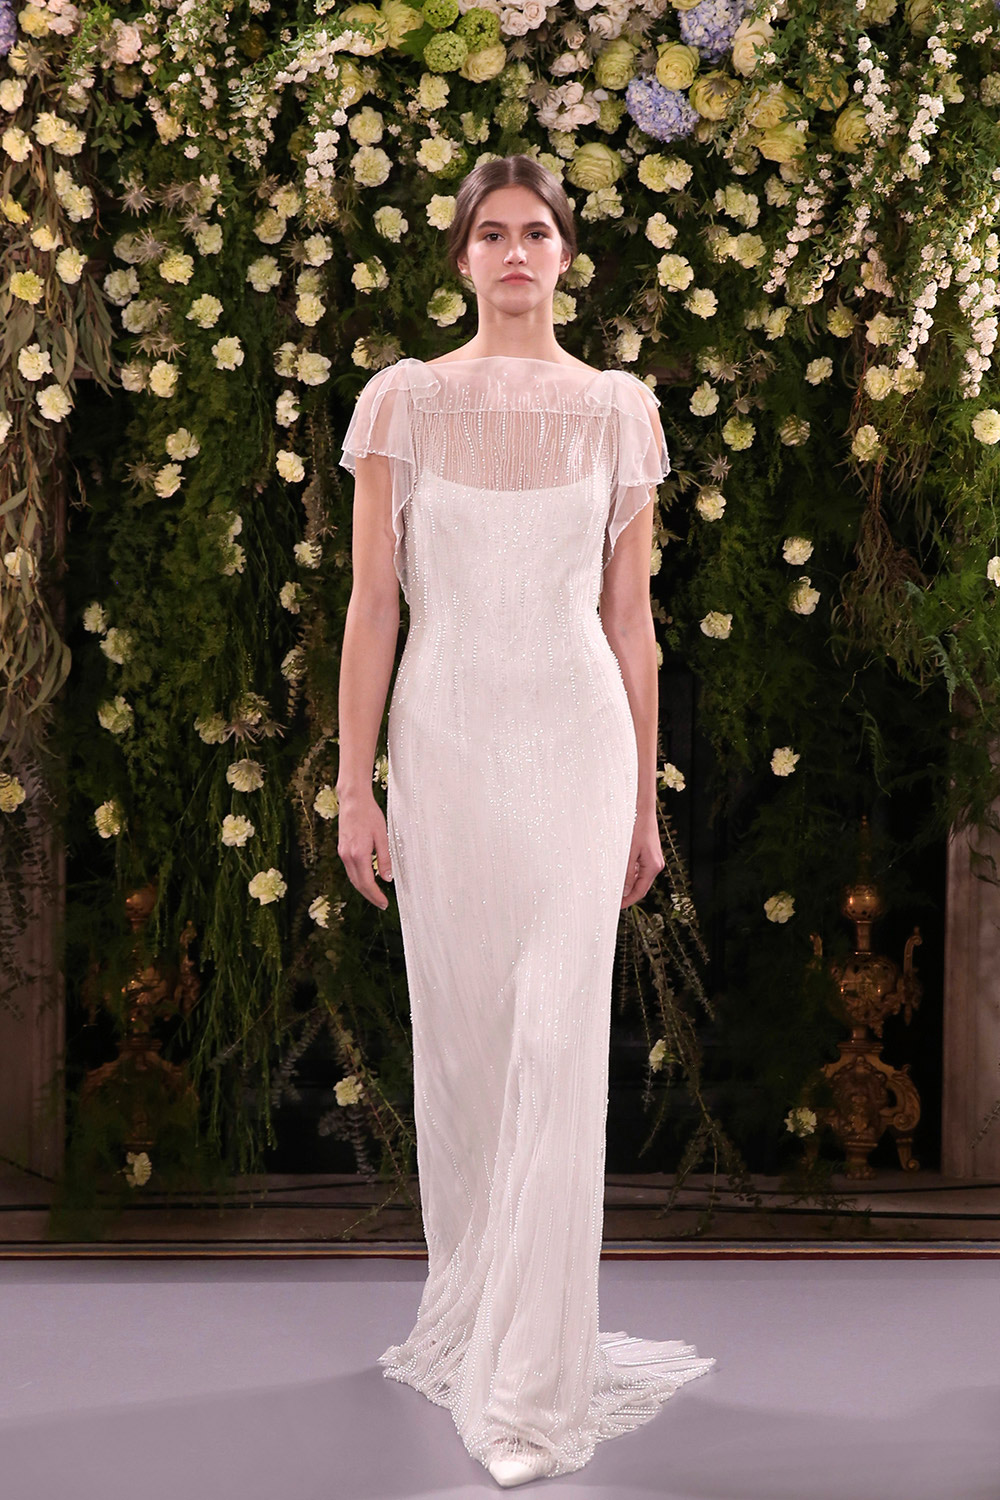 Violet – Jenny Packham 2019 Bridal Collection. www.theweddingnotebook.com